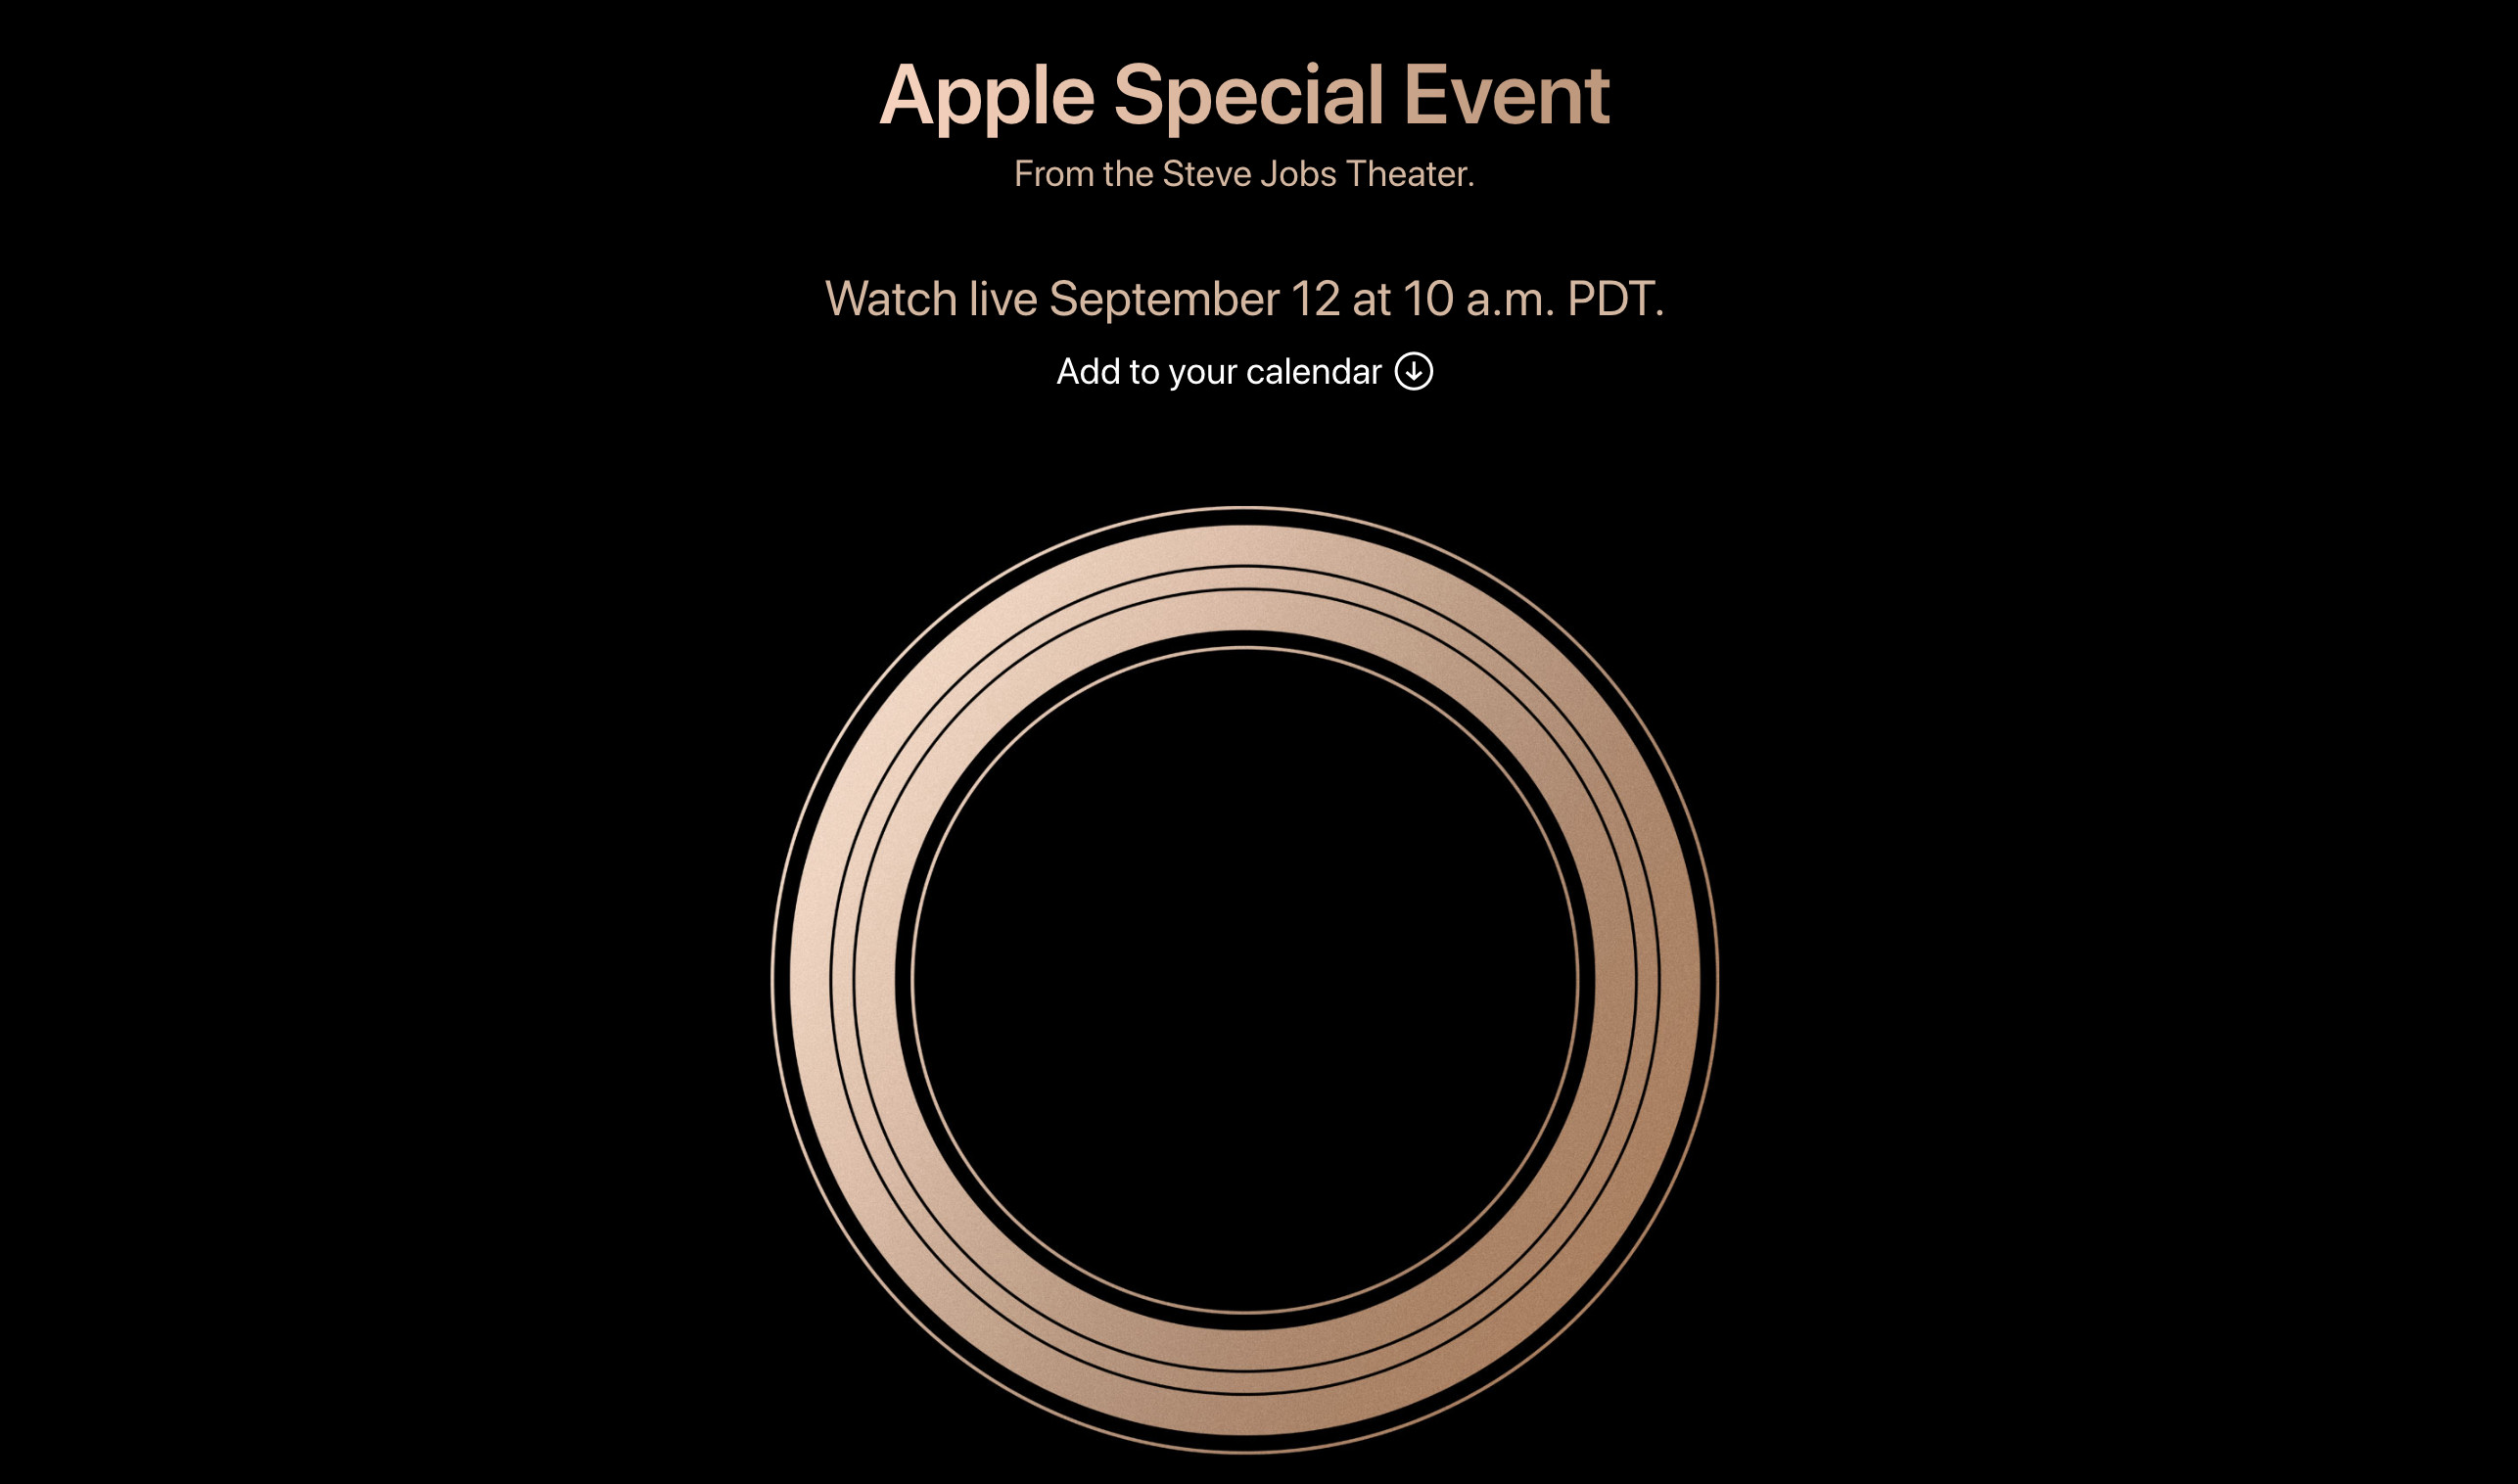 Apple Announces Apple Watch Series 4 with Bigger Display, New Watch Faces